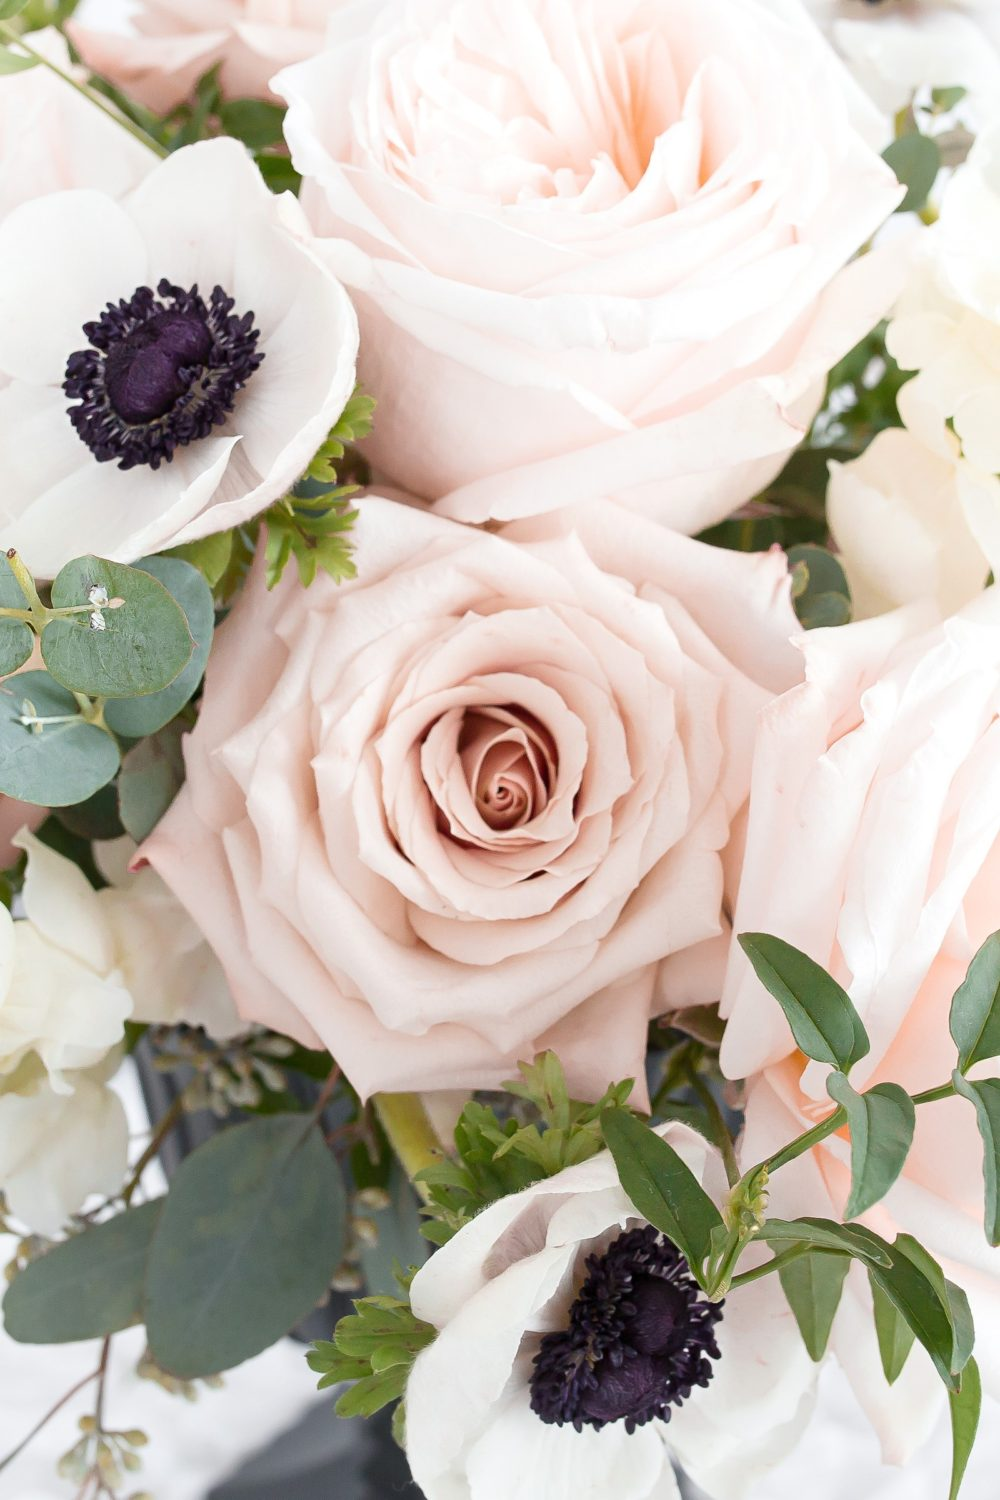 Top Rated Roses Archives Florist Blog We Love Florists Floristry Resources Inspirations